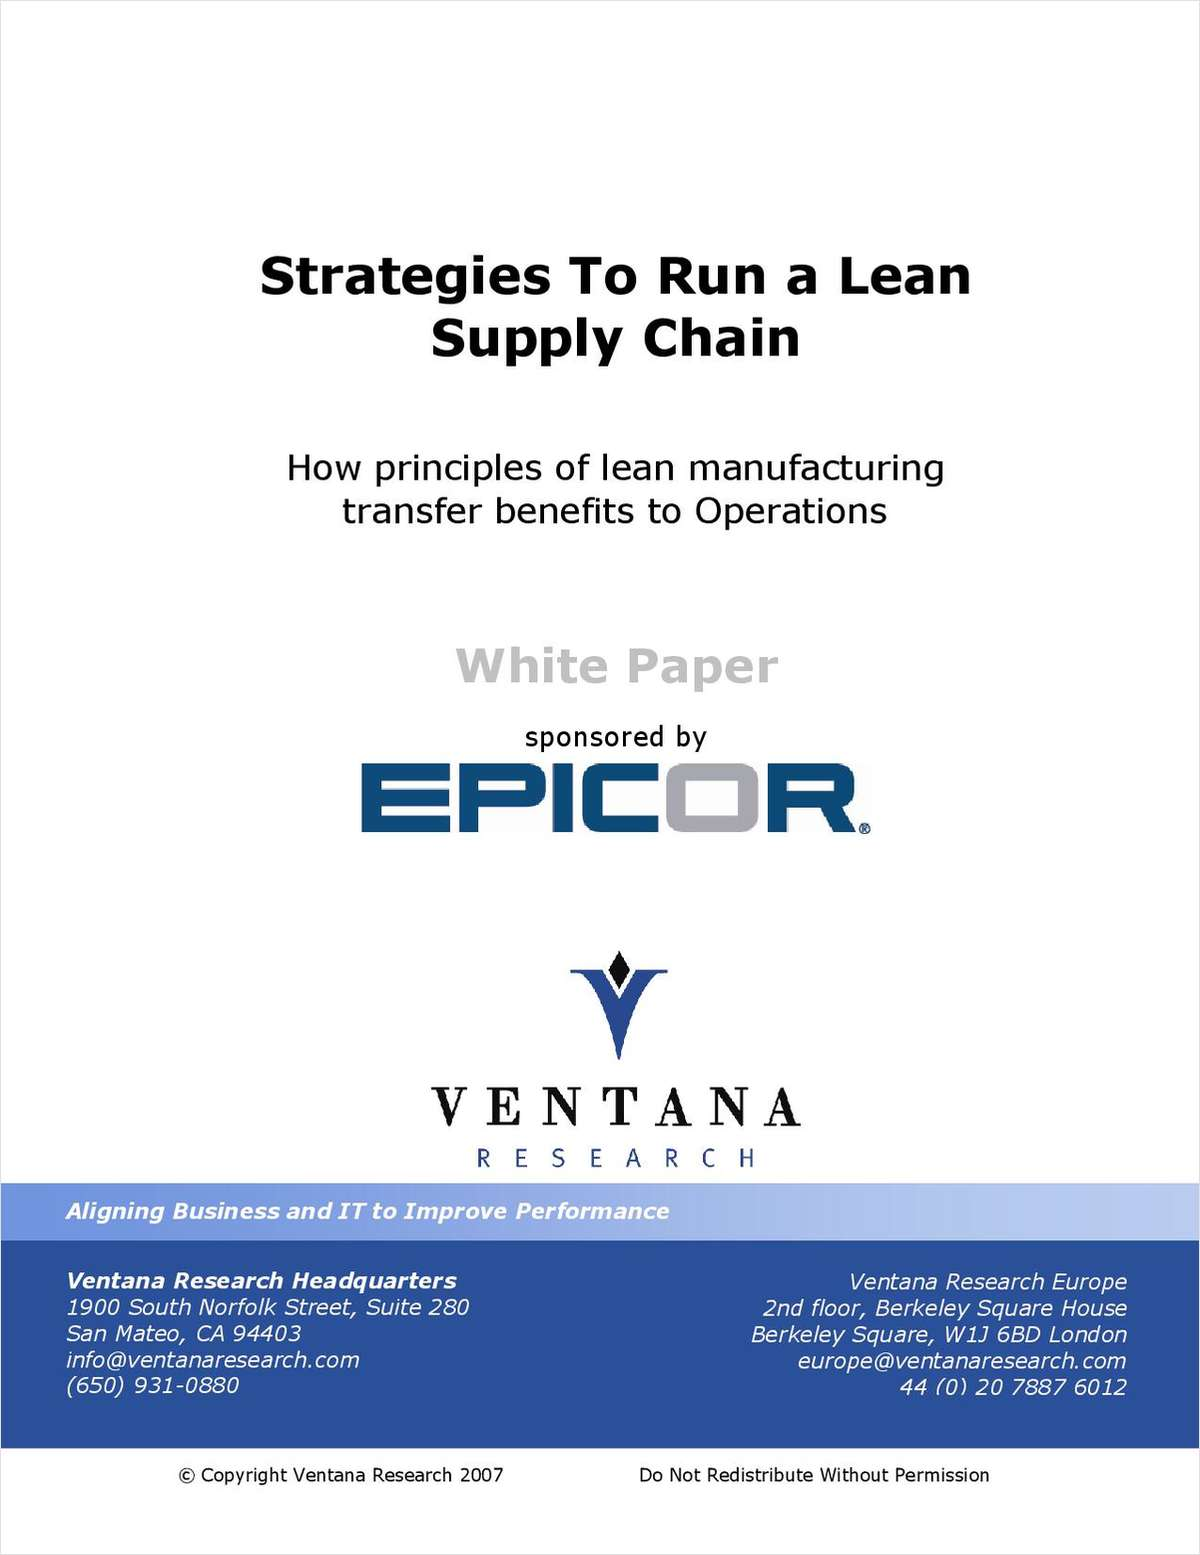 Strategies to Run a Lean Supply Chain: How Principles of Lean Manufacturing Transfer Benefits to Operations